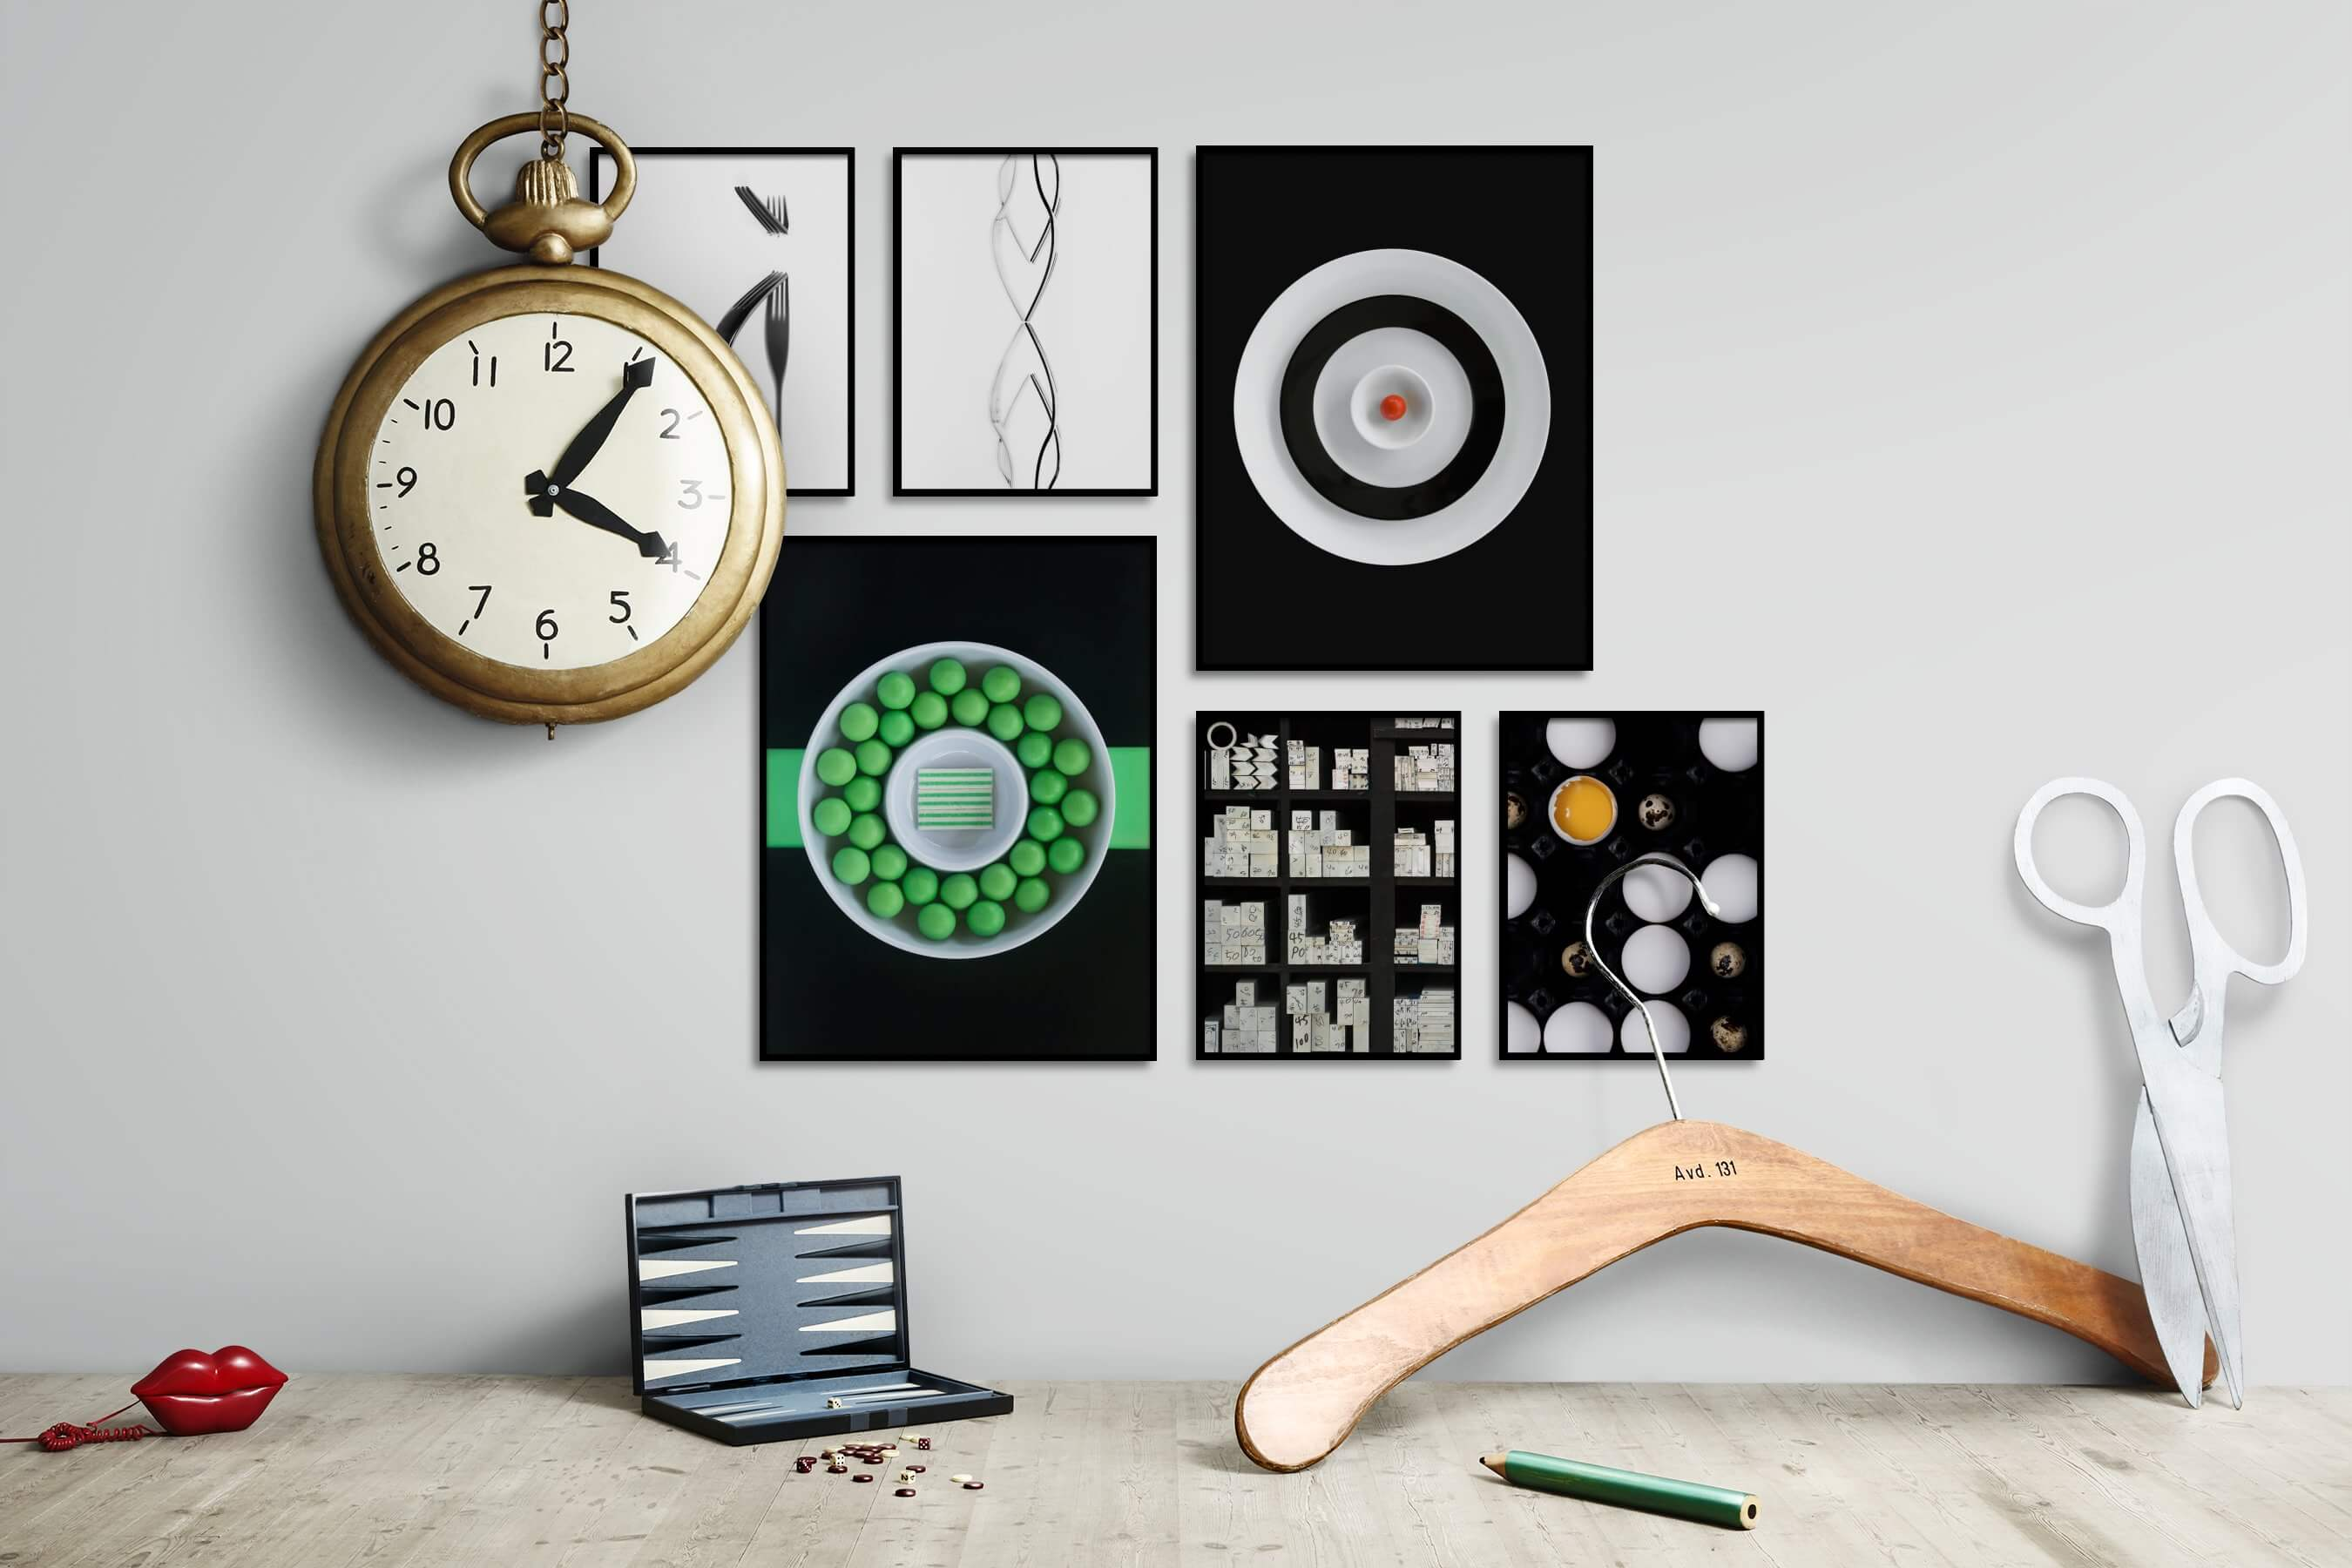 Gallery wall idea with six framed pictures arranged on a wall depicting Black & White, Bright Tones, For the Minimalist, Dark Tones, For the Maximalist, and For the Moderate